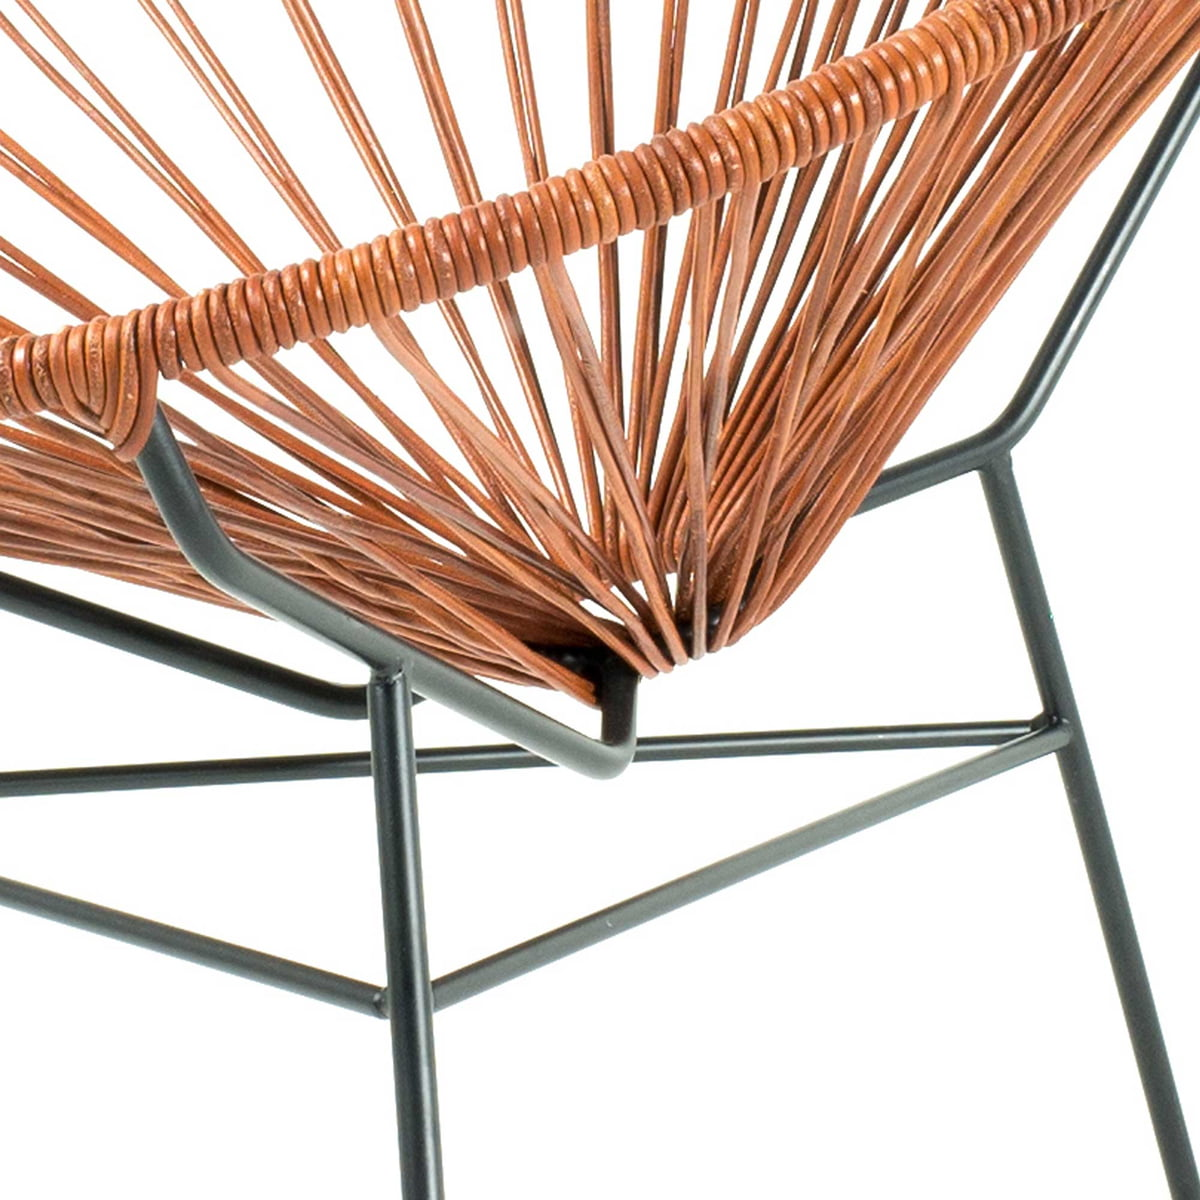 Acapulco Chairs Acapulco Chair Leather By Acapulco Design